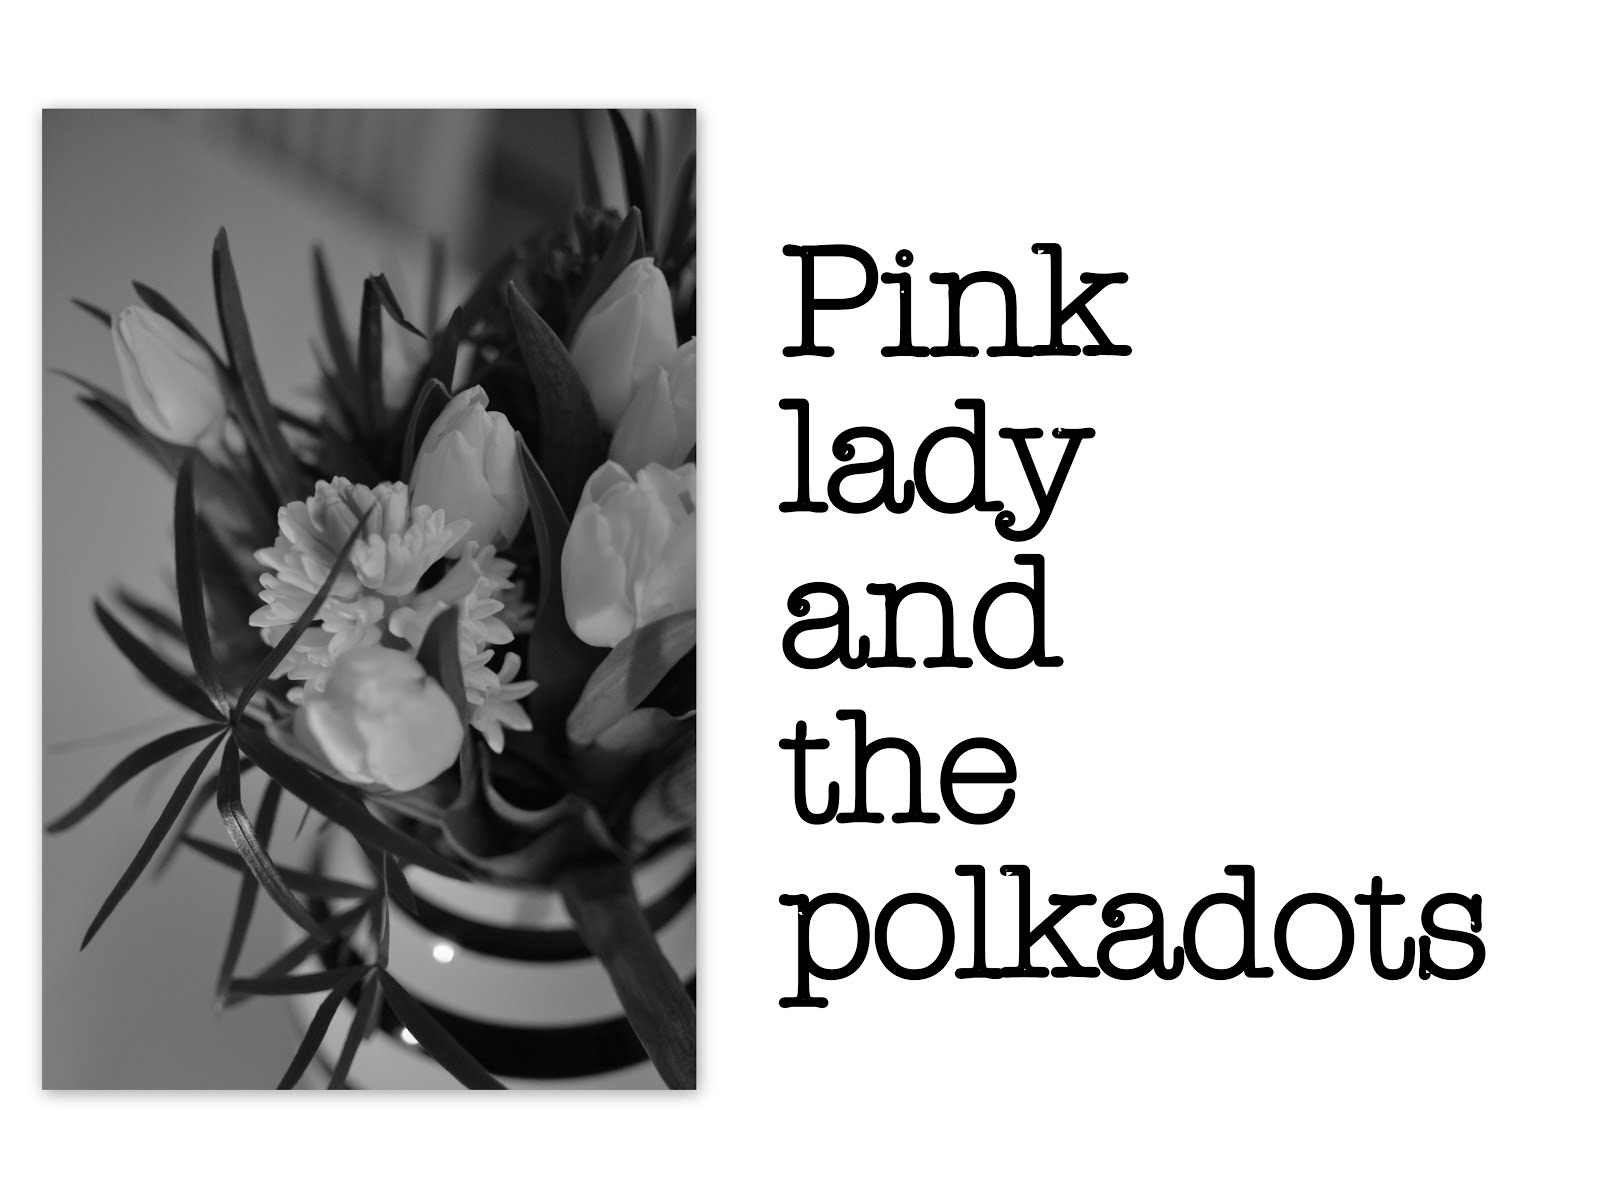 Pink lady and the polkadots